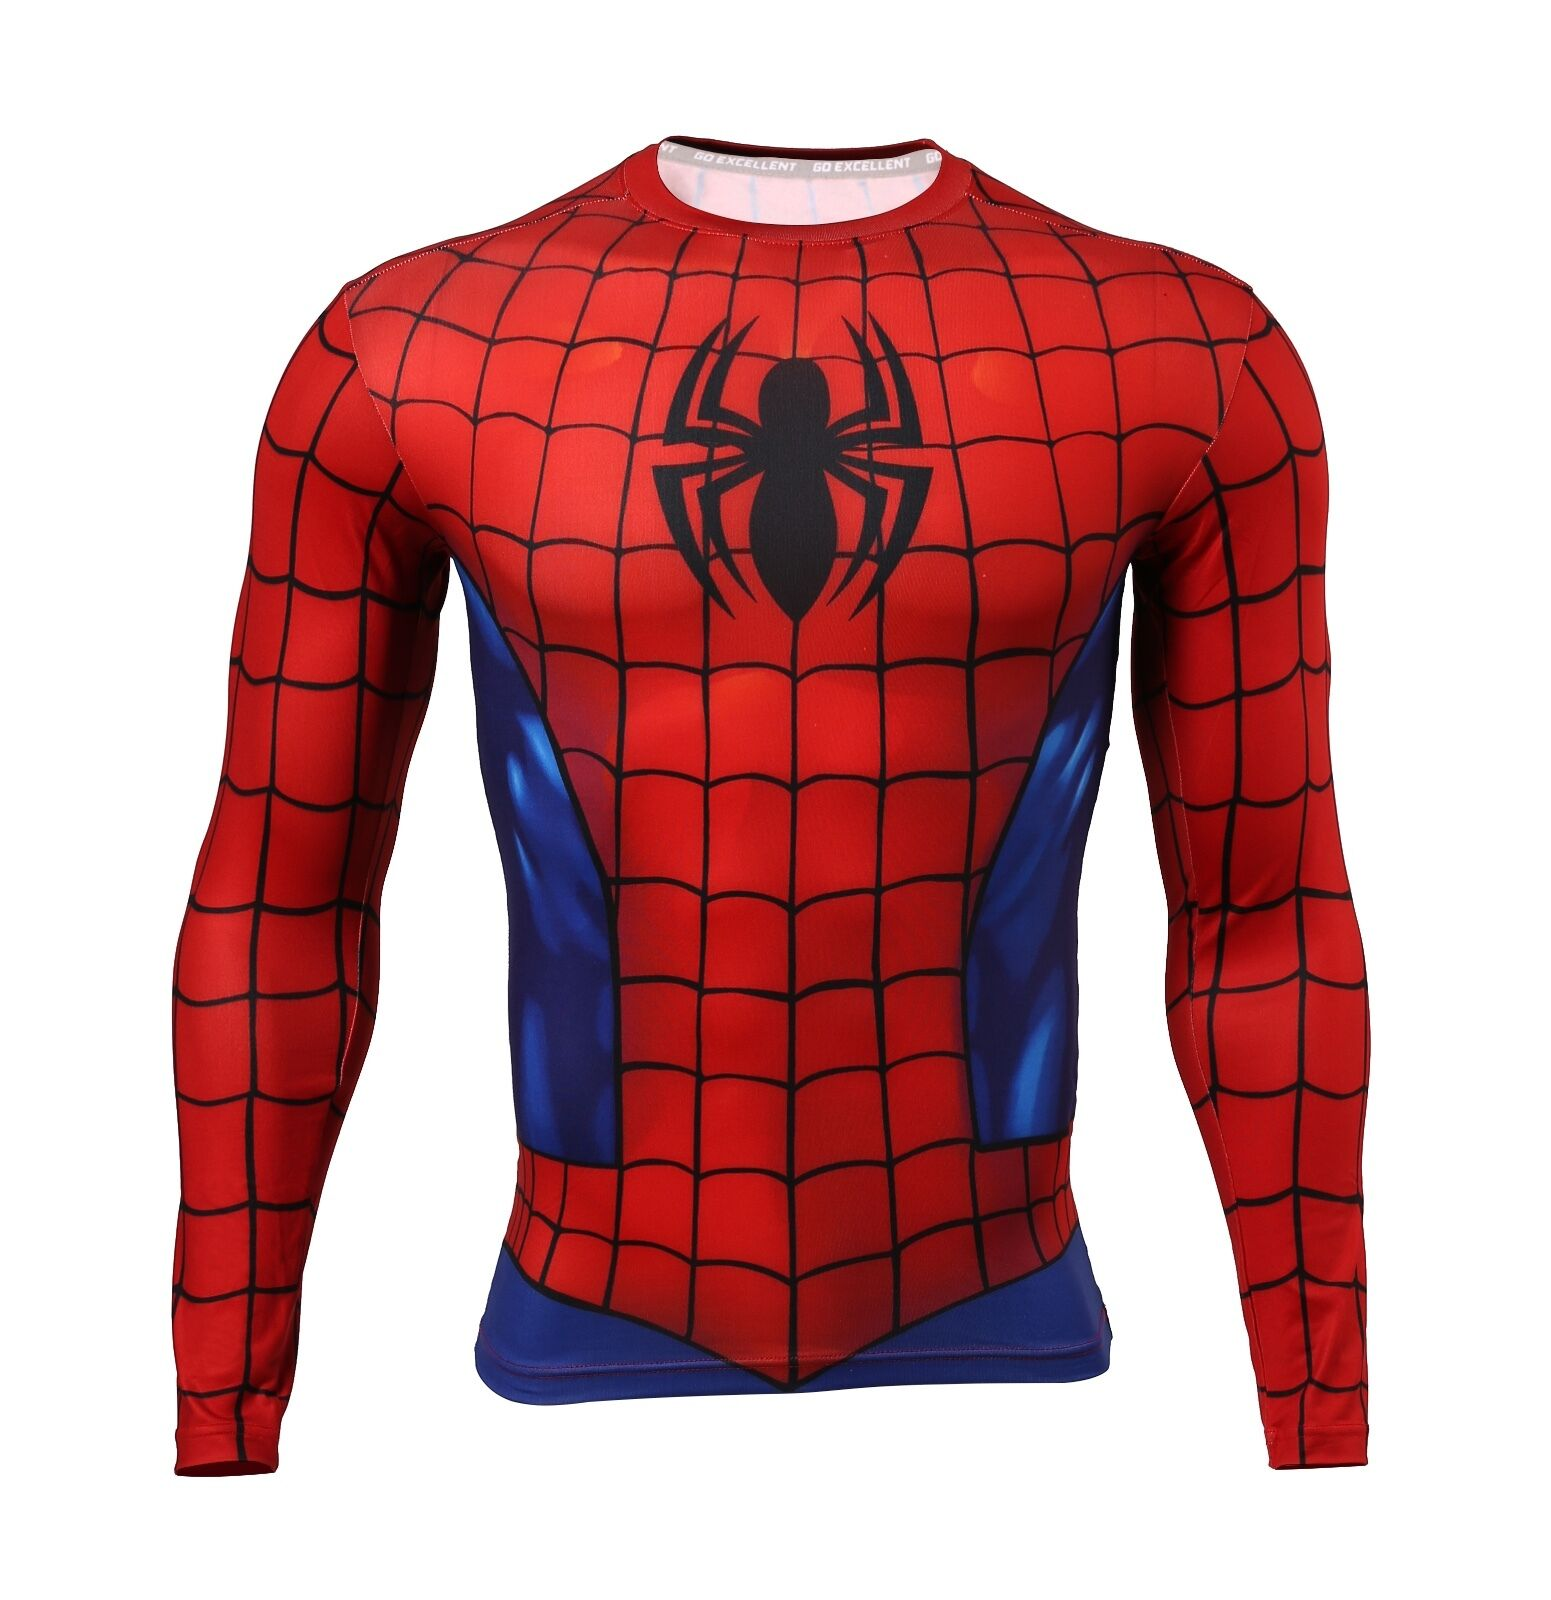 Amino Z Team Womens Weight Lifting Bodybuilding Gym: Mens Compression Superhero Top Base Layer Gym Long Sleeve